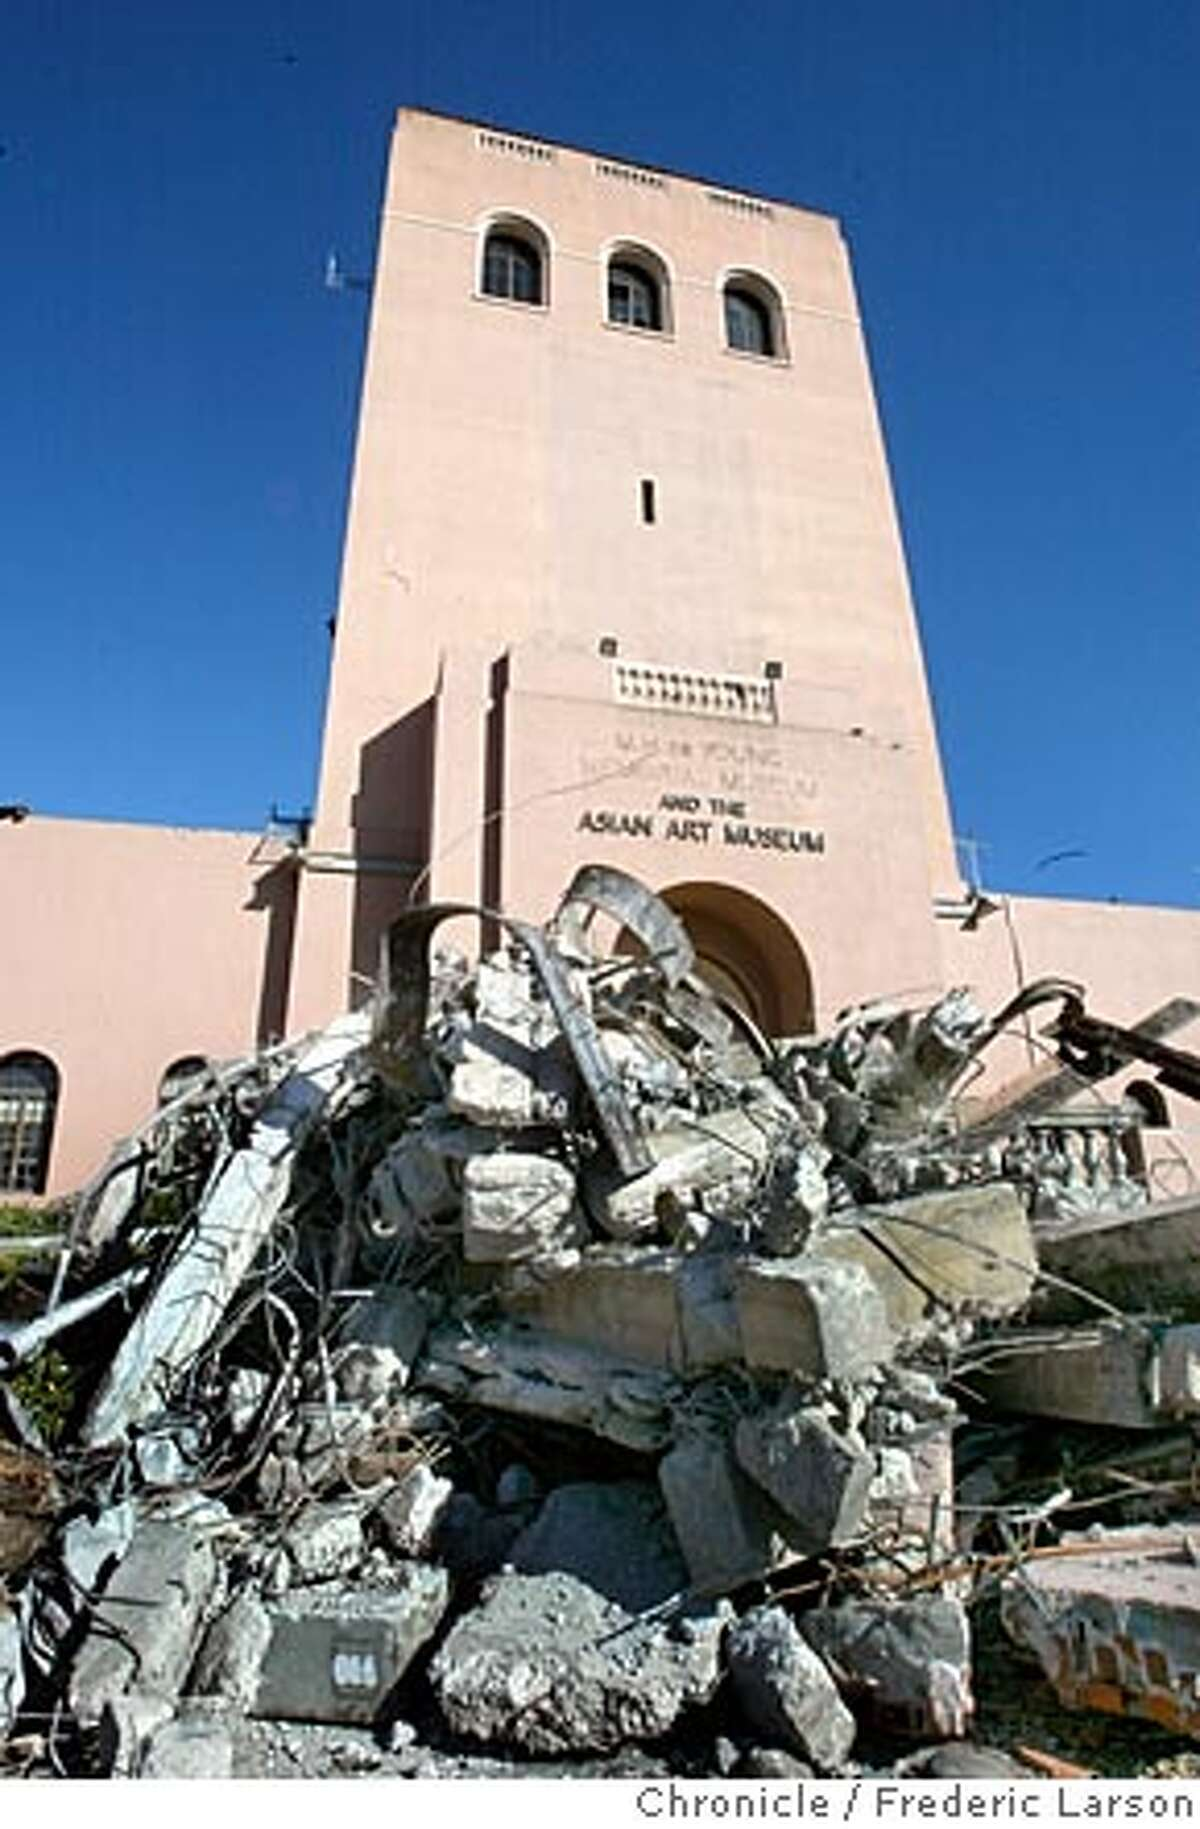 DEYOUNG-C-15APR02-MT-FRL: Partially demolished De Young museum in Golden Gate Park. Chronicle photo by Frederic Larson